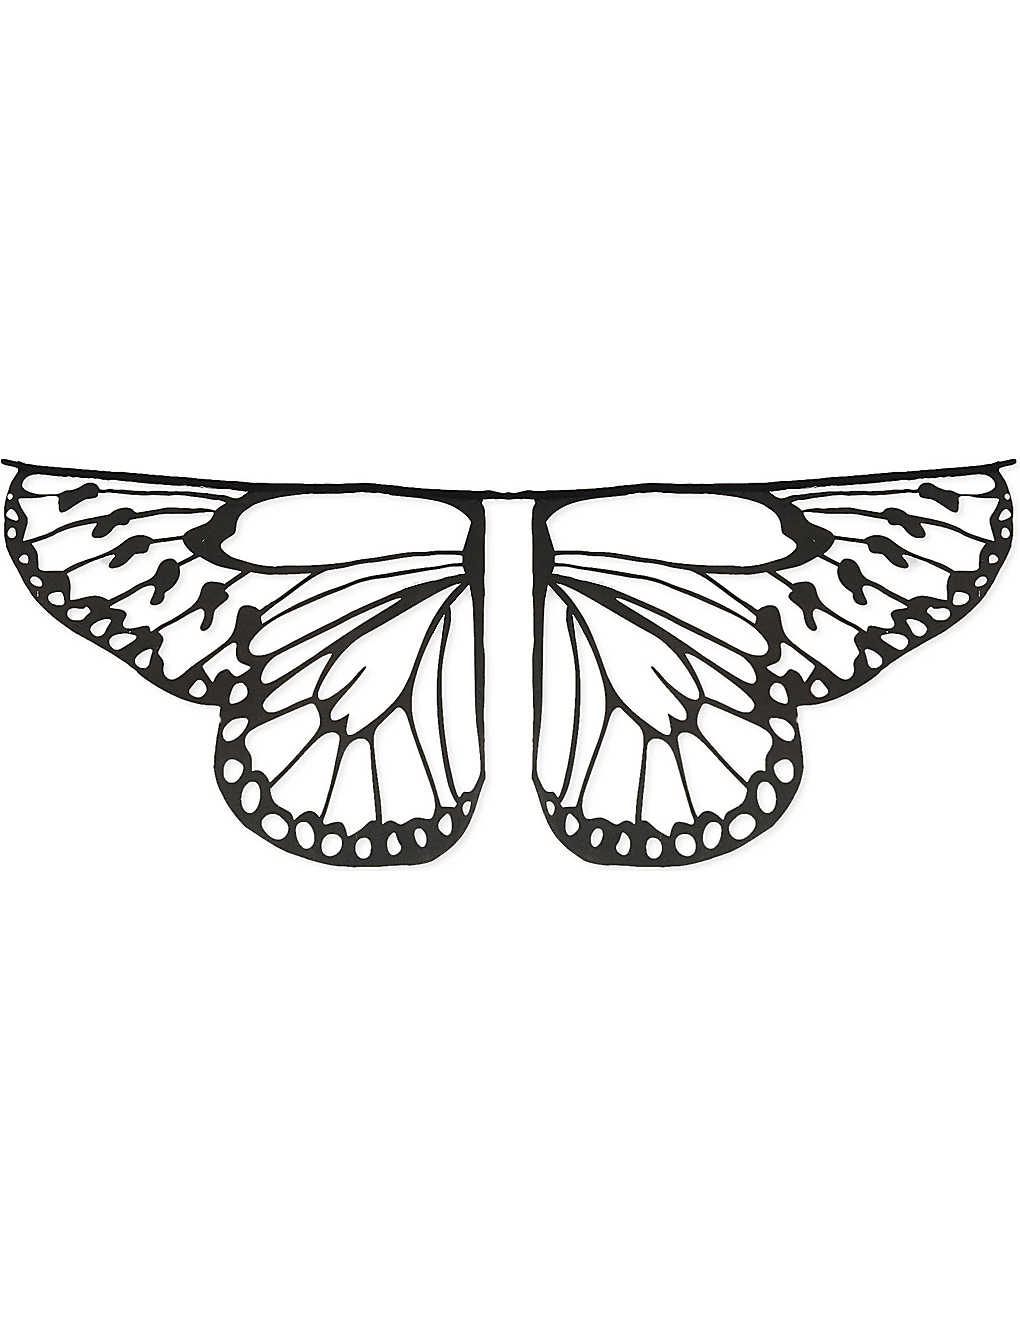 Design Your Own Butterfly Wings Seedling